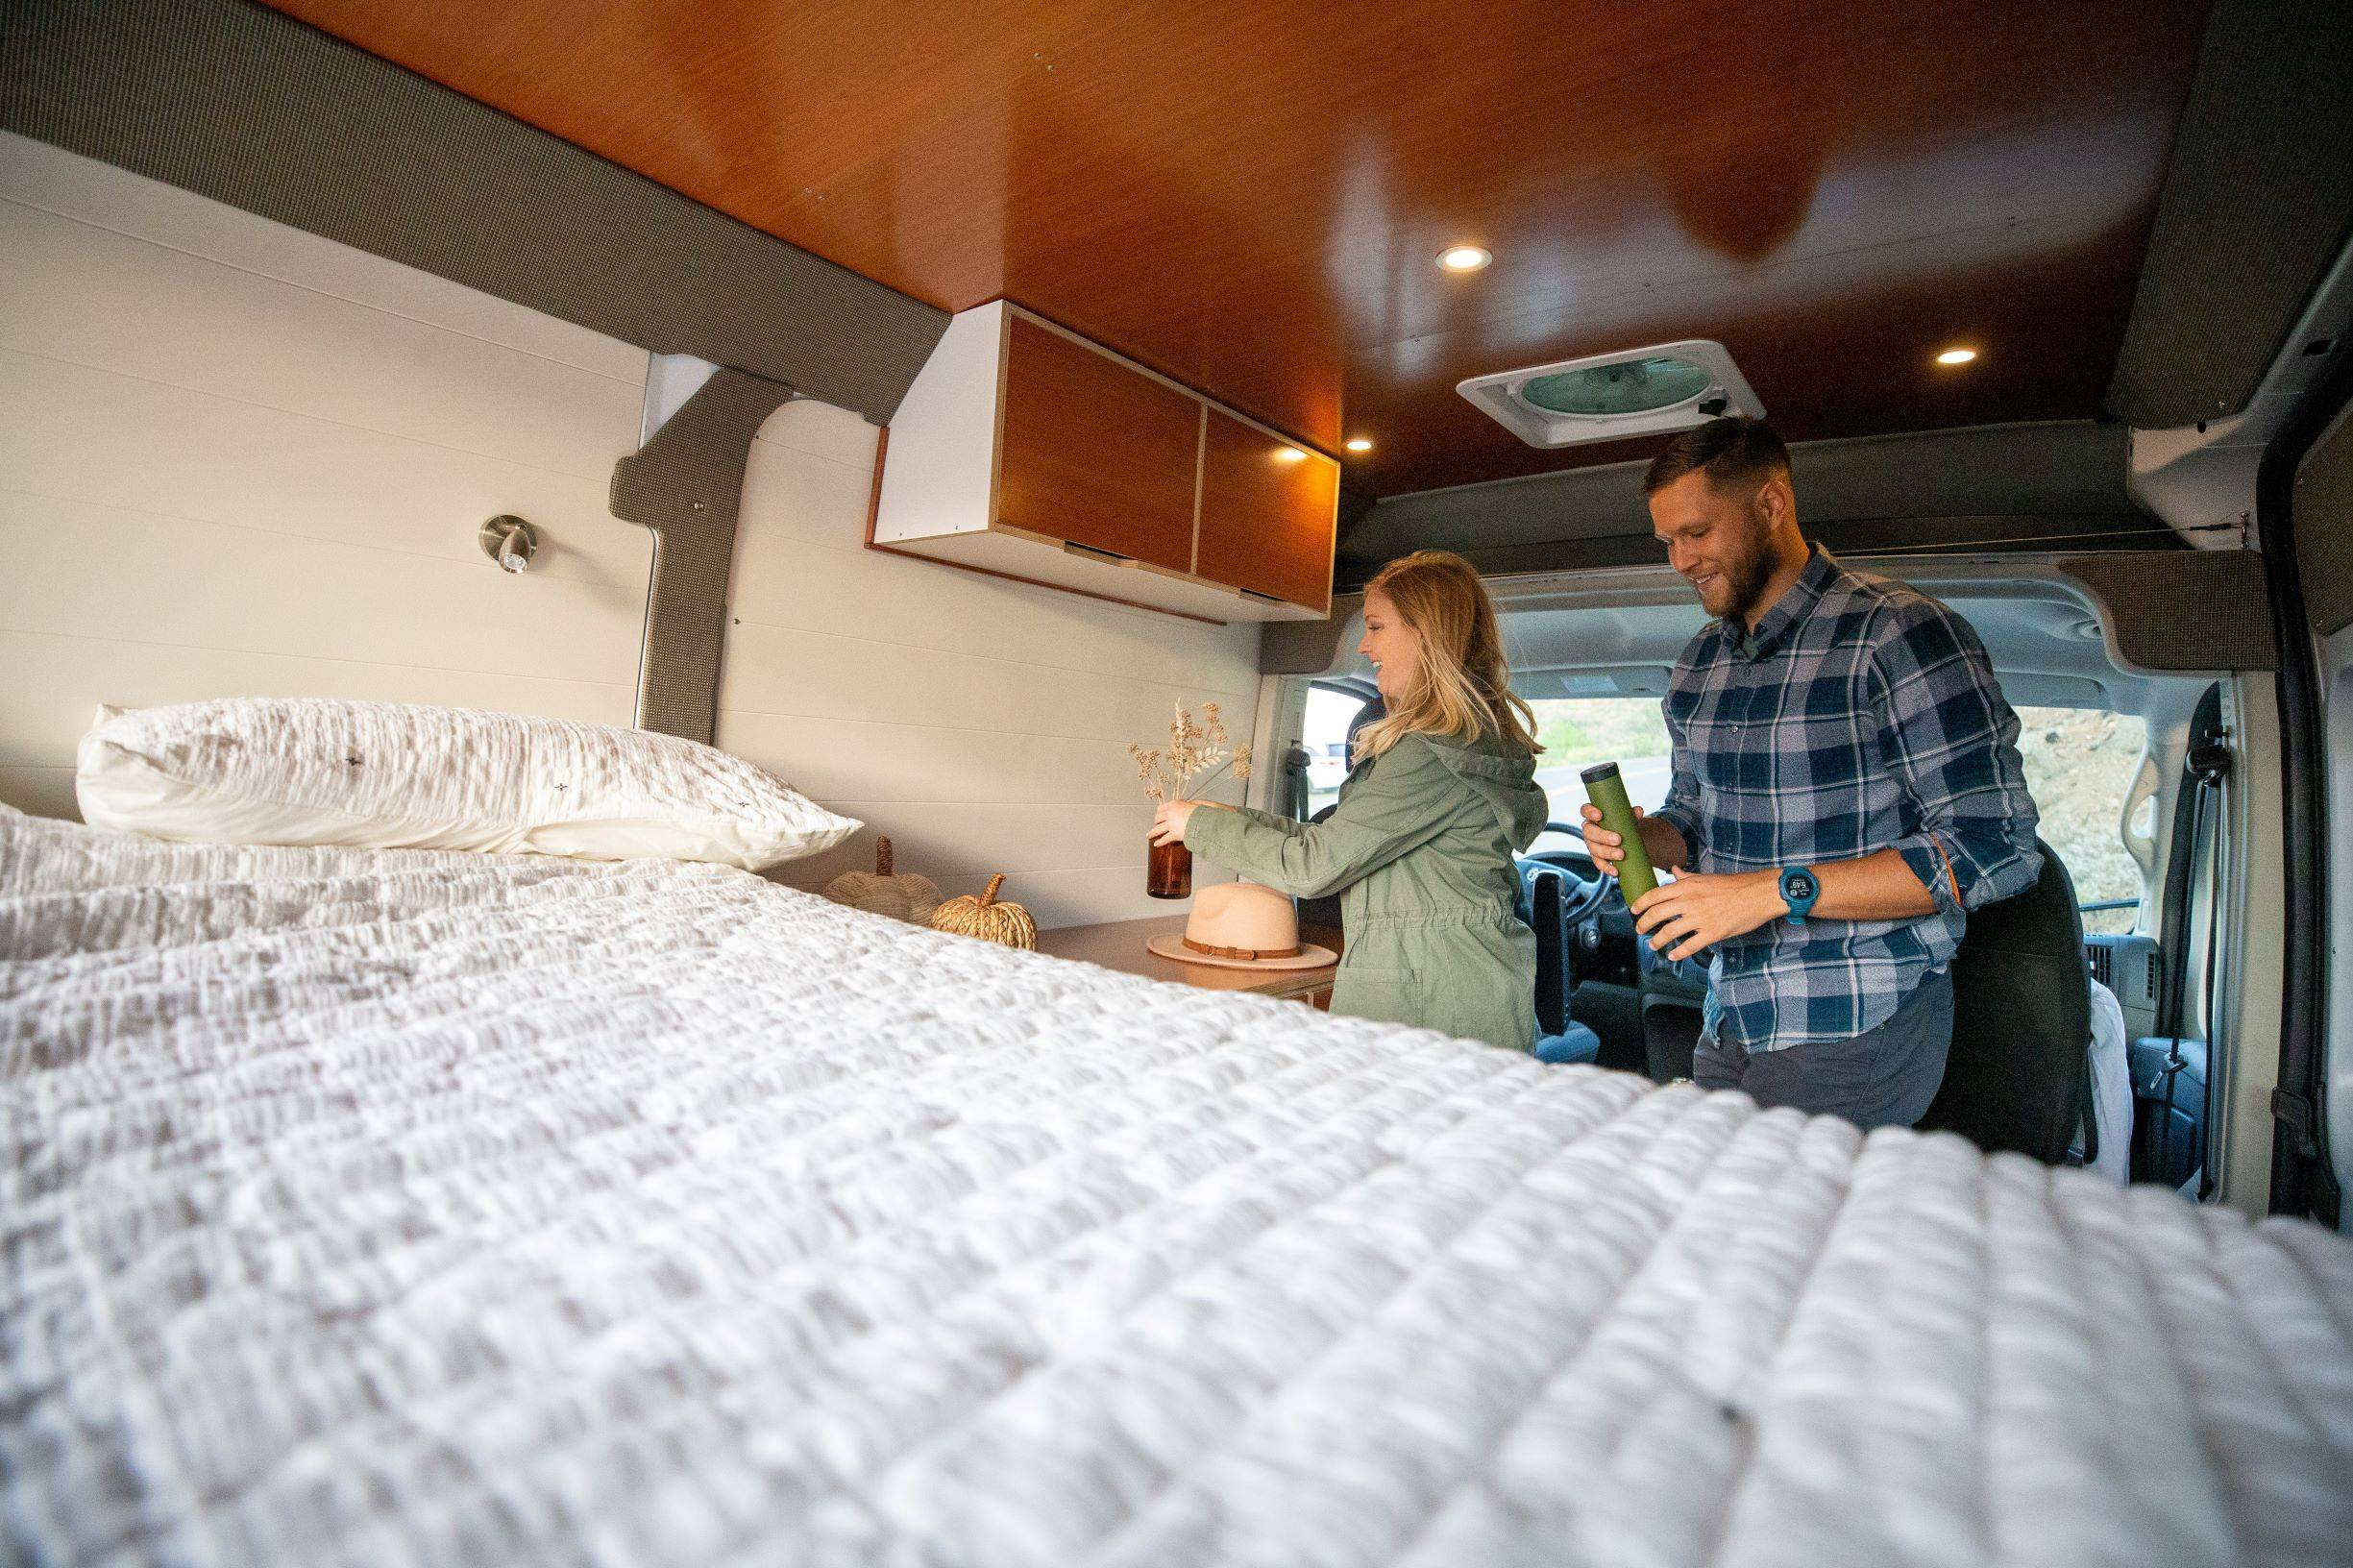 The Bivy - Sprinter 144 / ProMaster 136 Van Conversion - Interior View from Bed of Man and Woman - The Vansmith